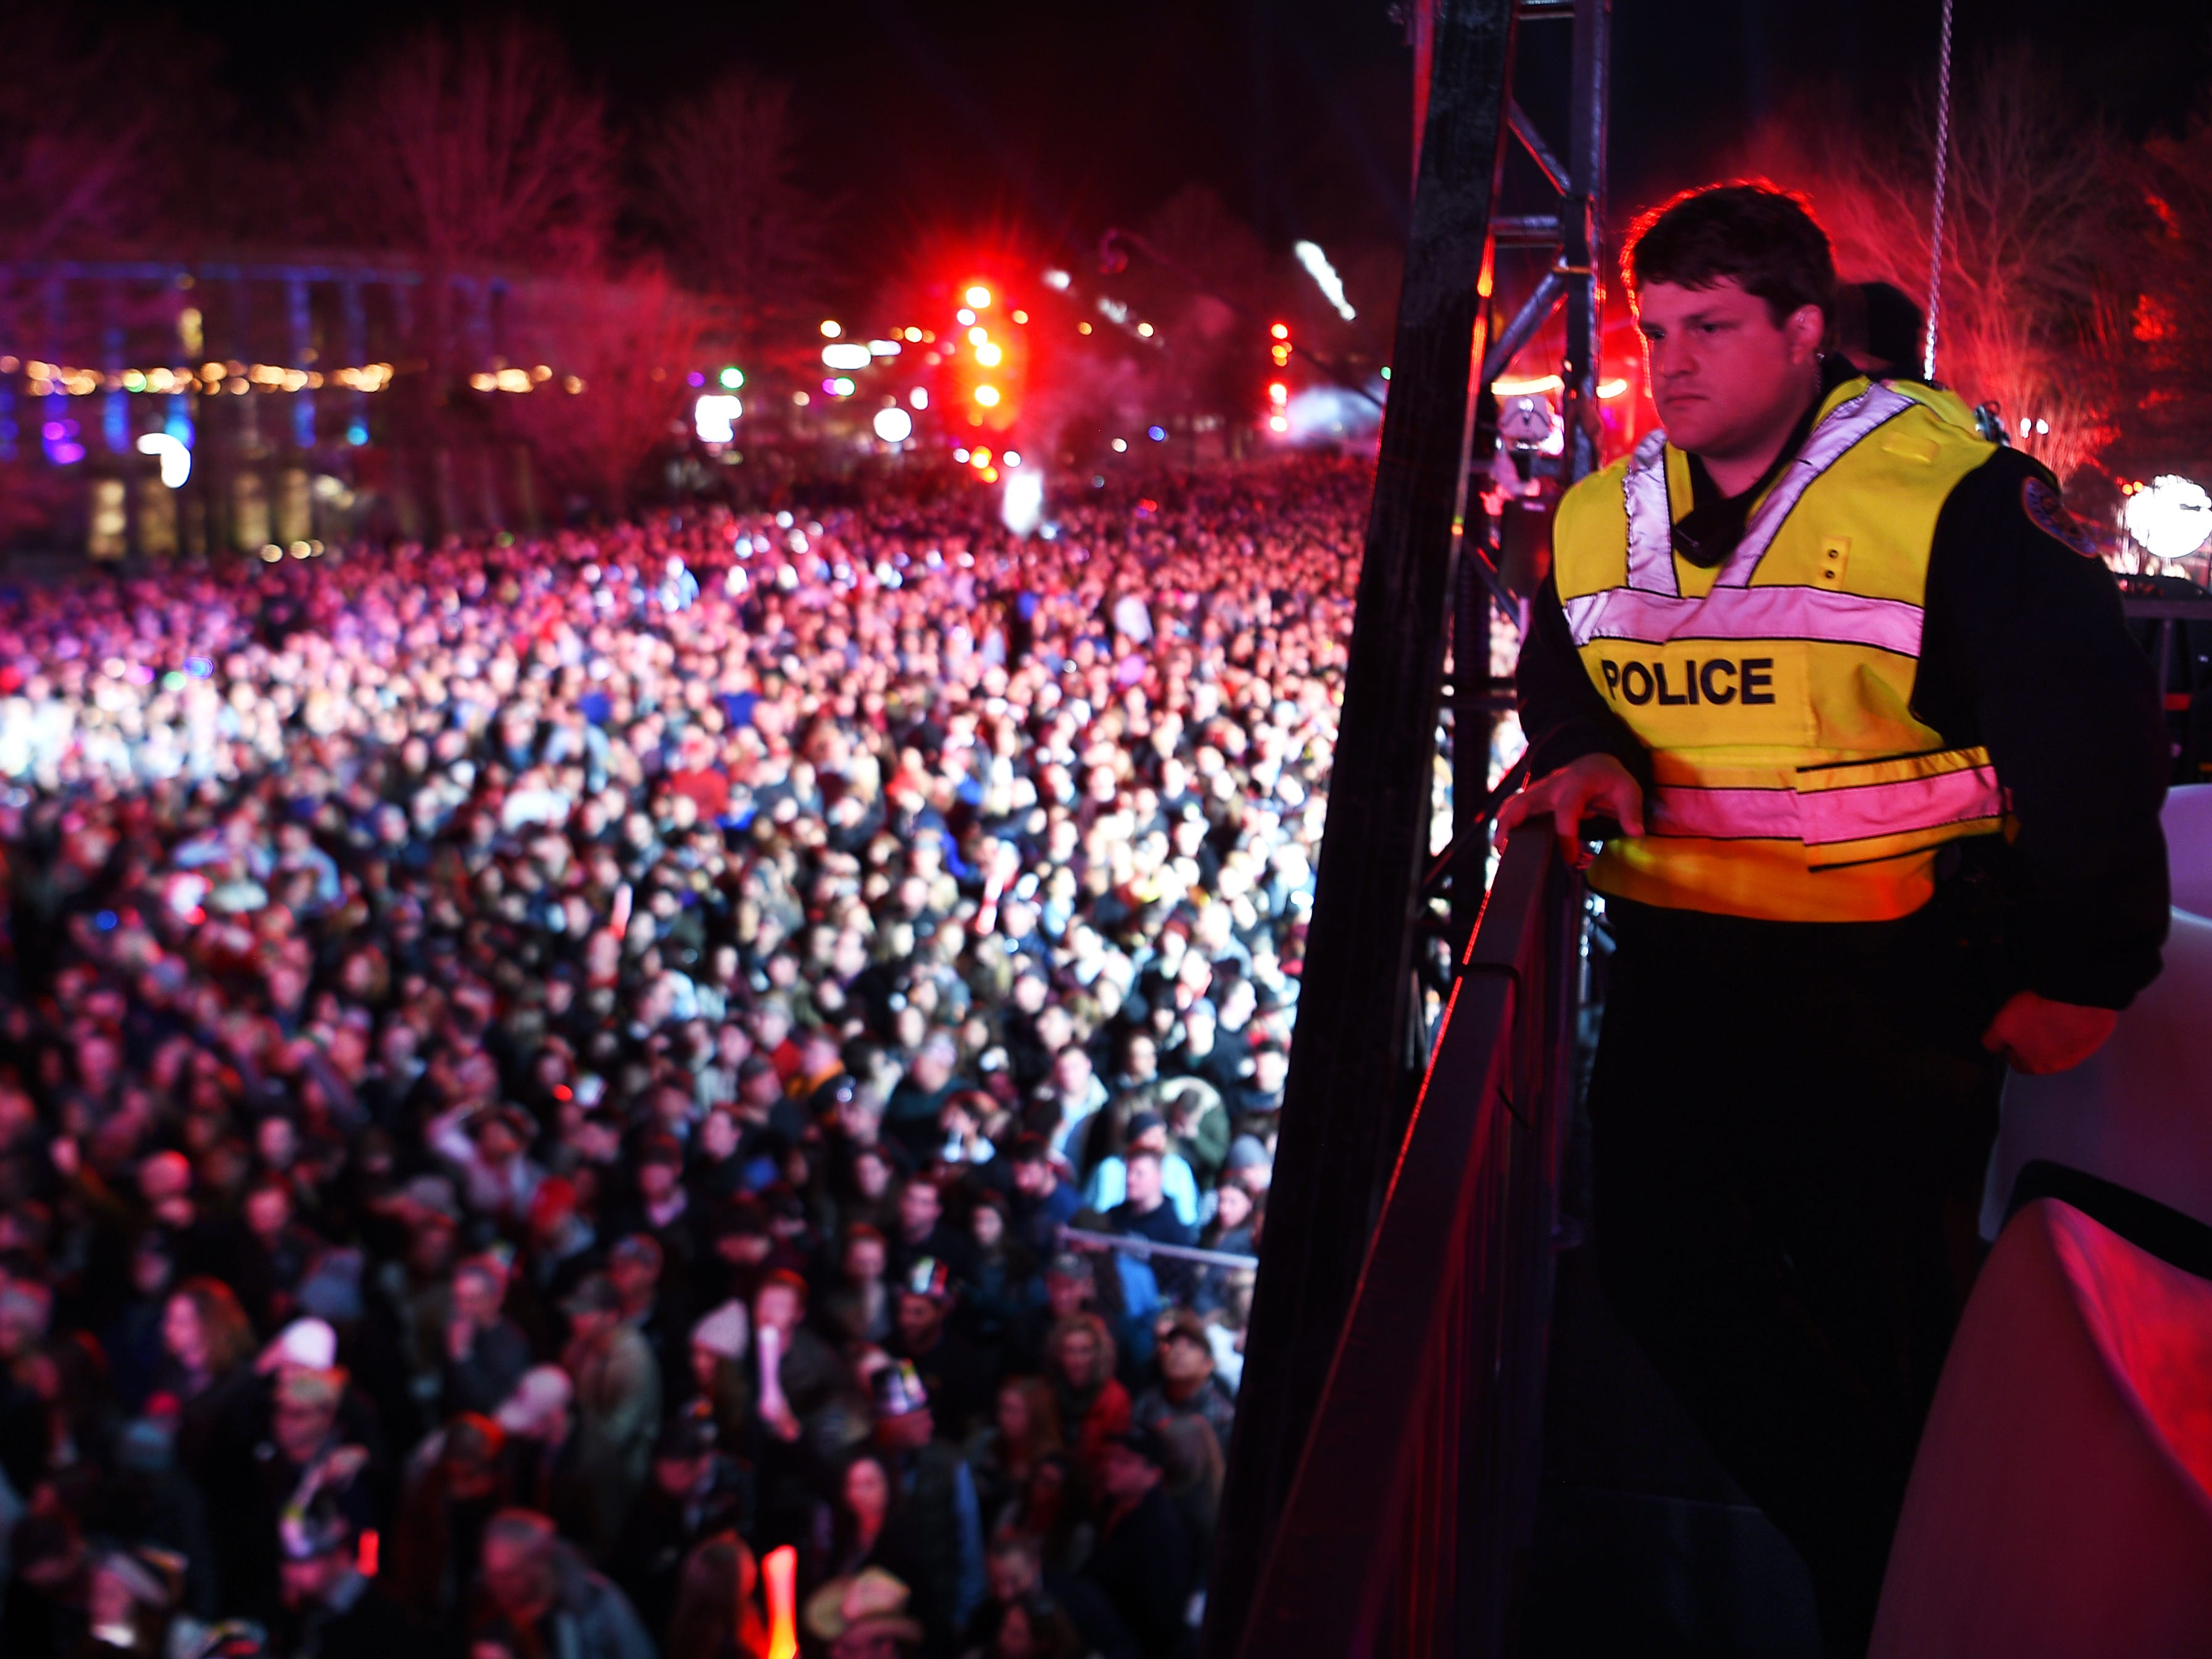 Nashville police watch the crowd during the Jack Daniel's Music City Midnight: New Year's Eve at  Bicentennial Capitol Mall State Park in  Nashville on Monday, Dec. 31, 2018.